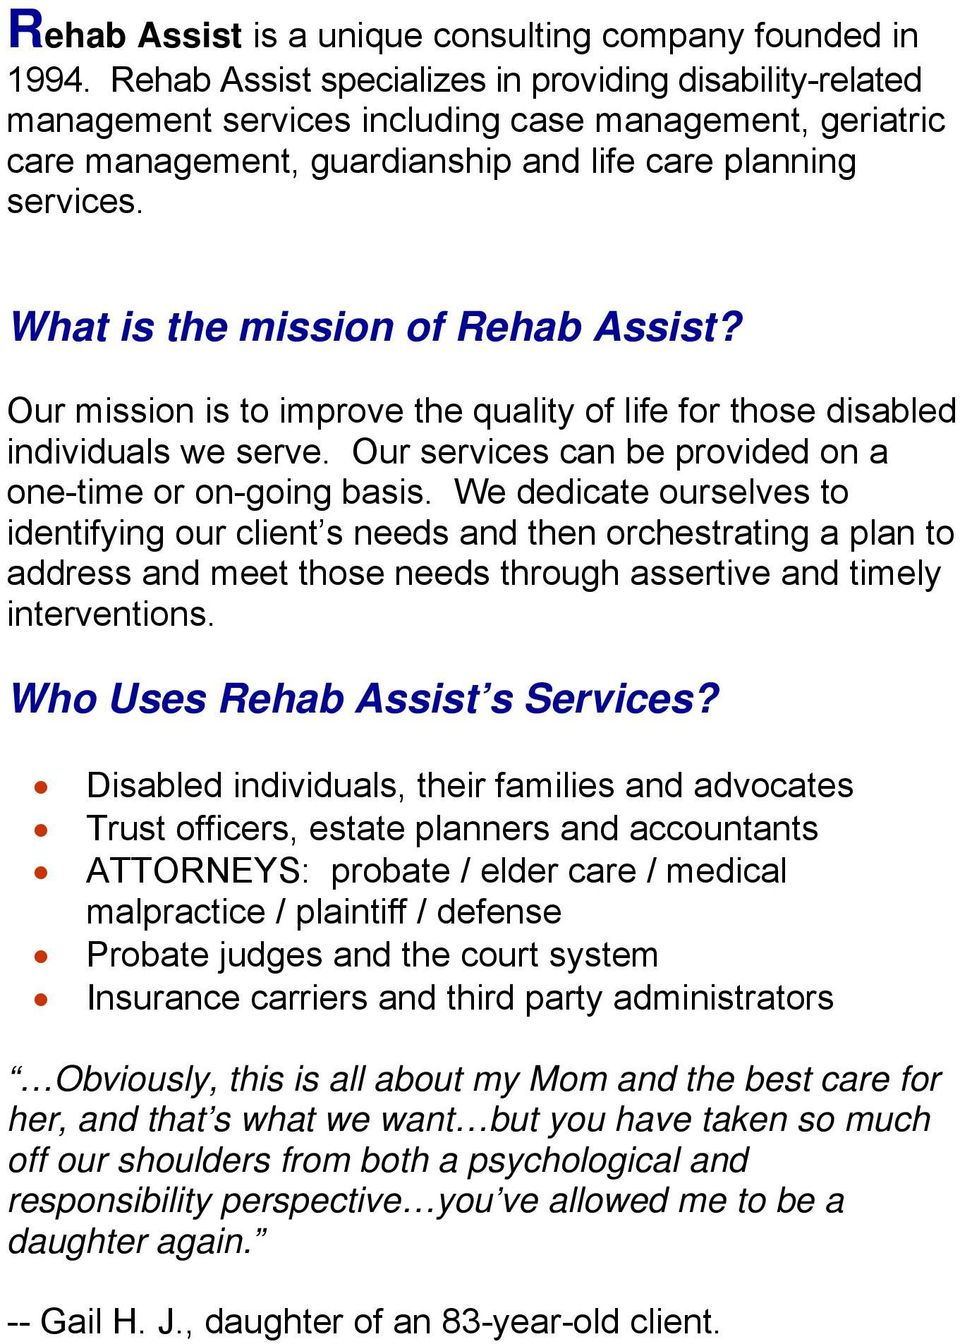 What is the mission of Rehab Assist? Our mission is to improve the quality of life for those disabled individuals we serve. Our services can be provided on a one-time or on-going basis.